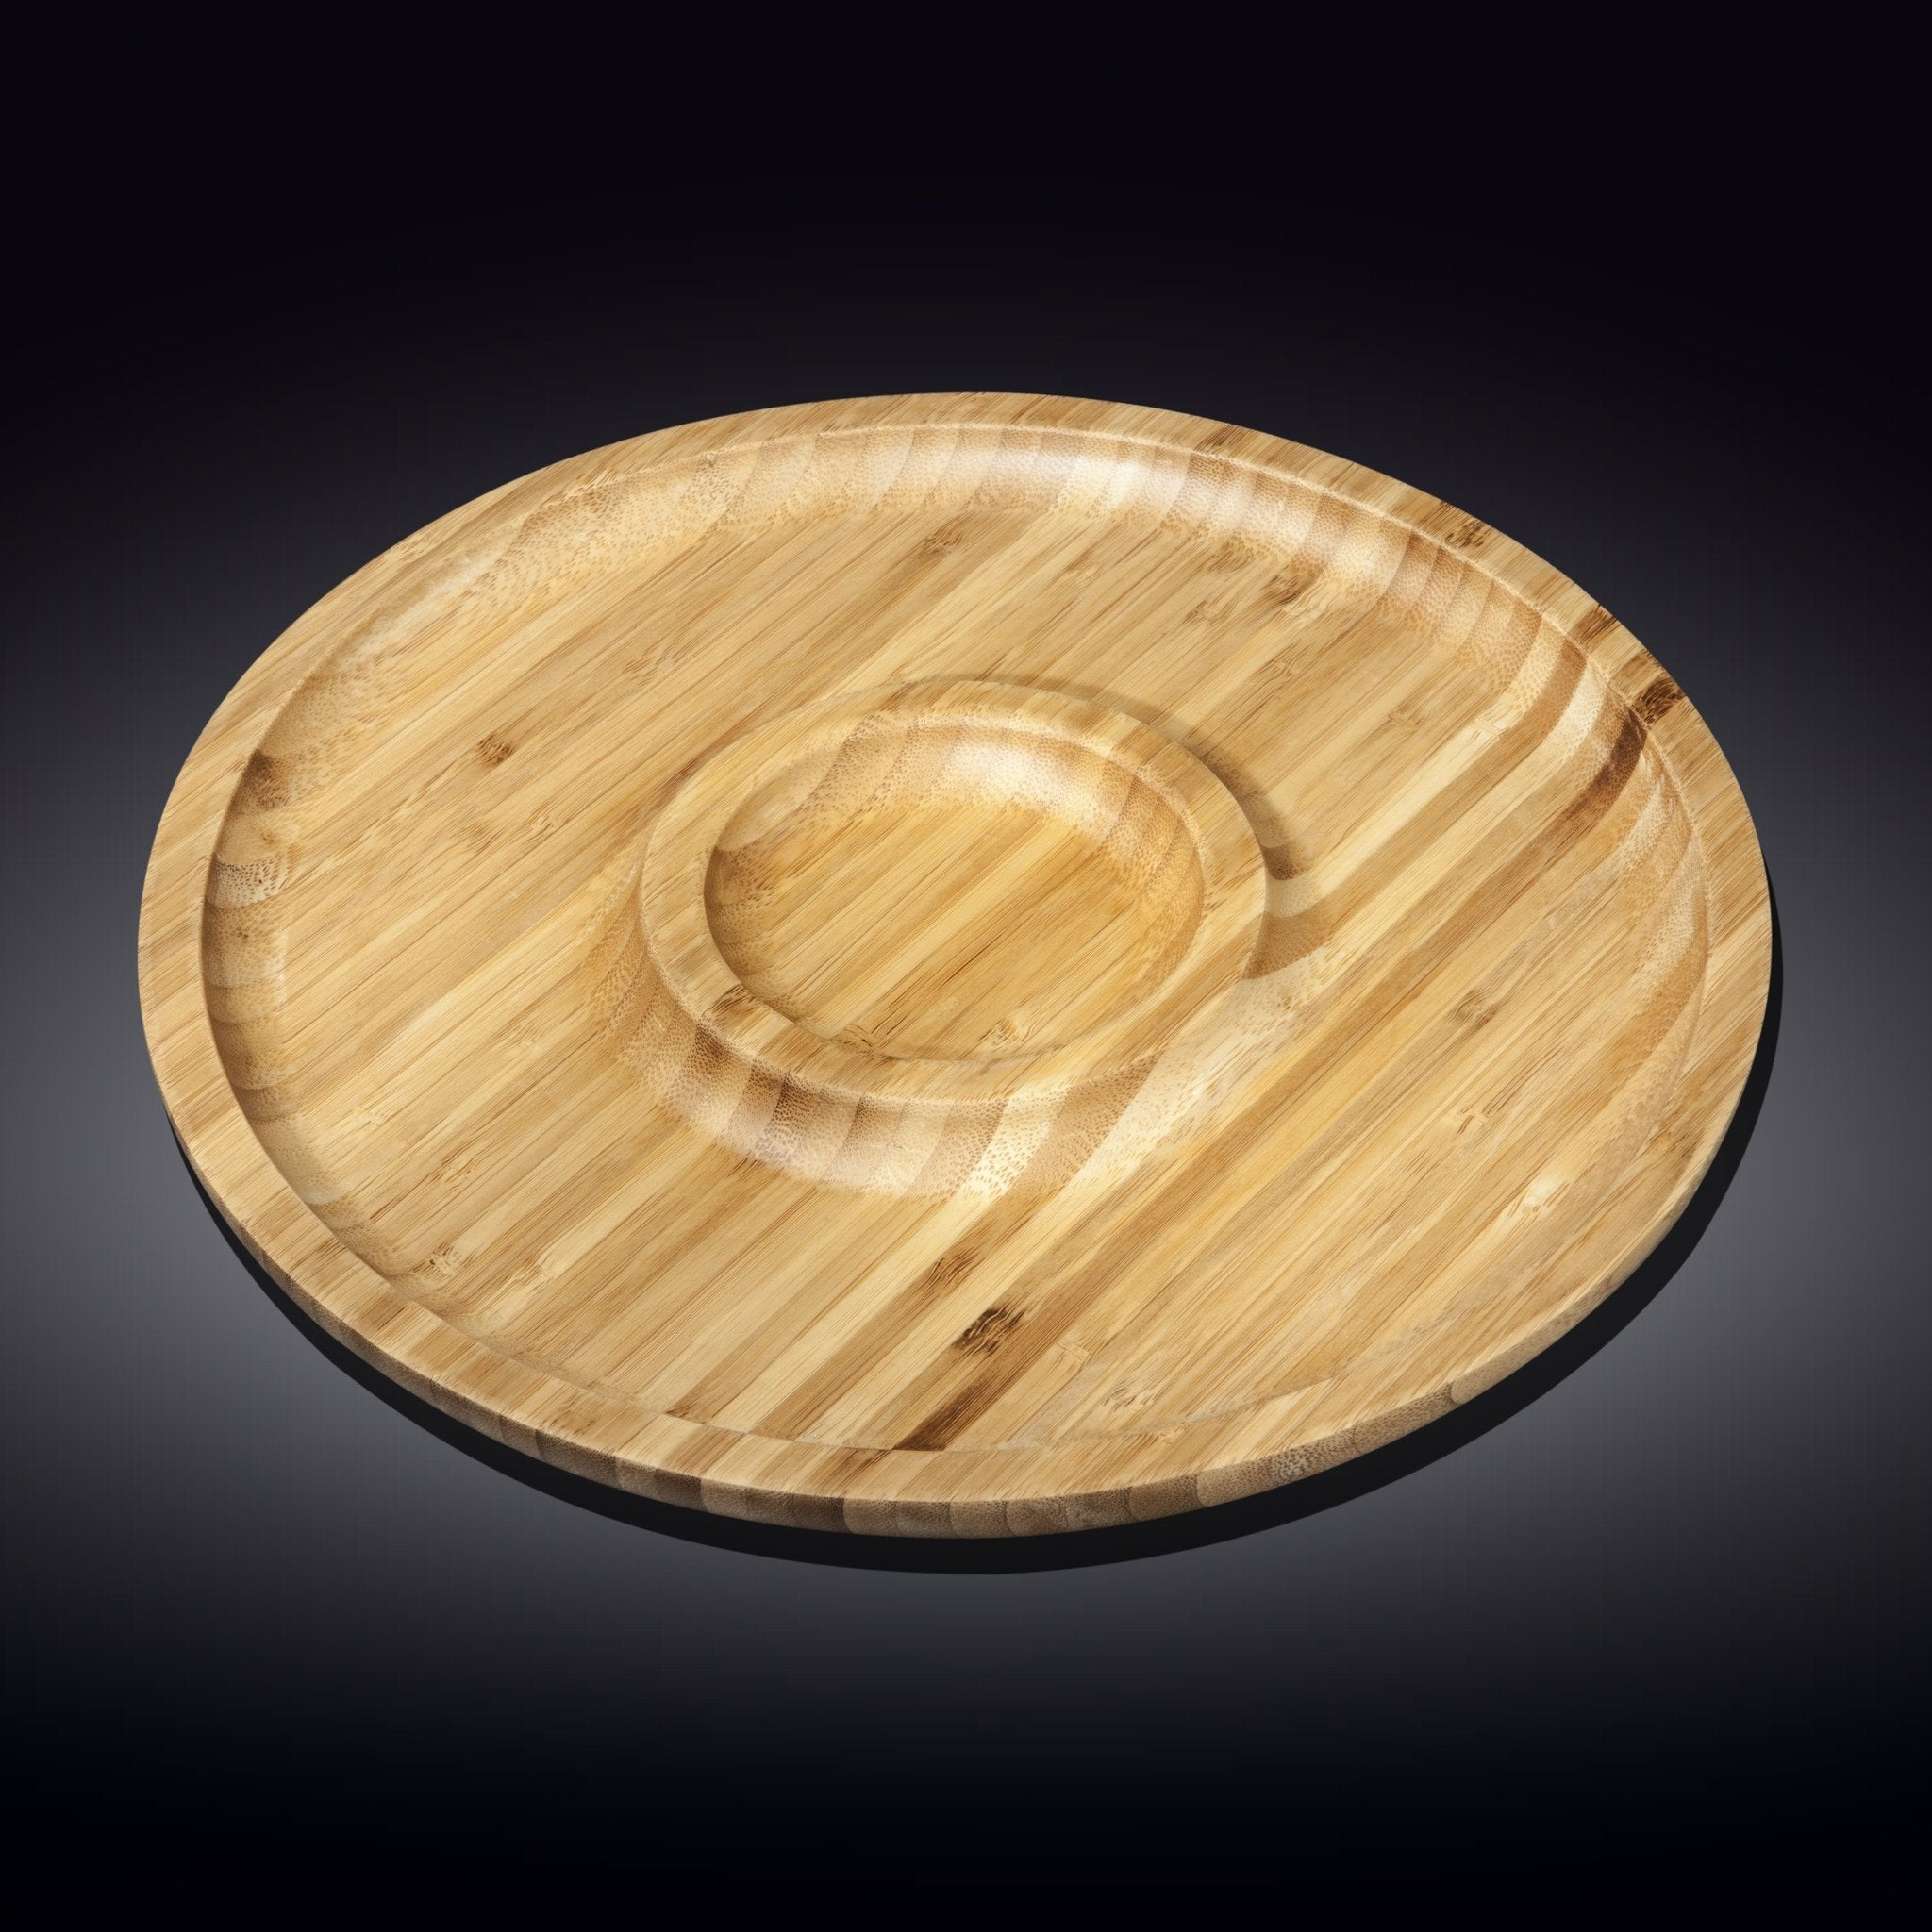 NATURAL BAMBOO 2 SECTION PLATTER 14"